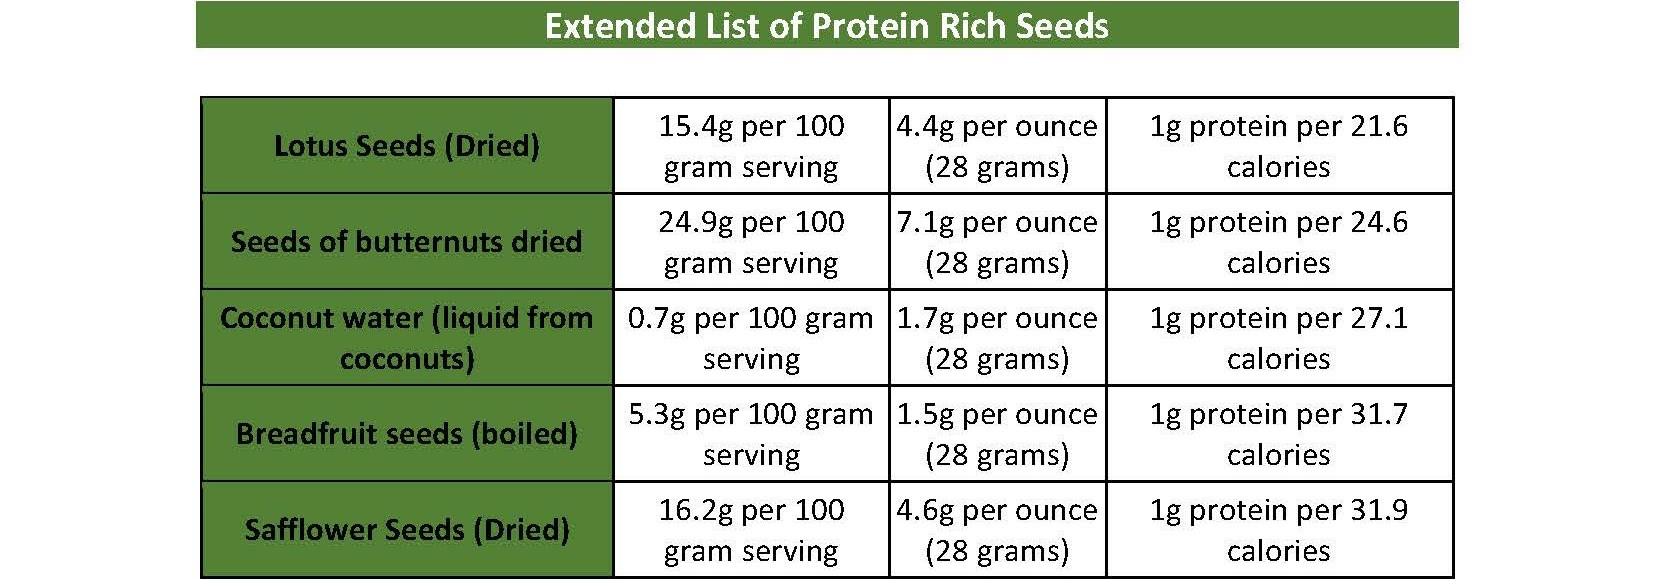 Healthy Choices - Seeds - Extended List Table 2